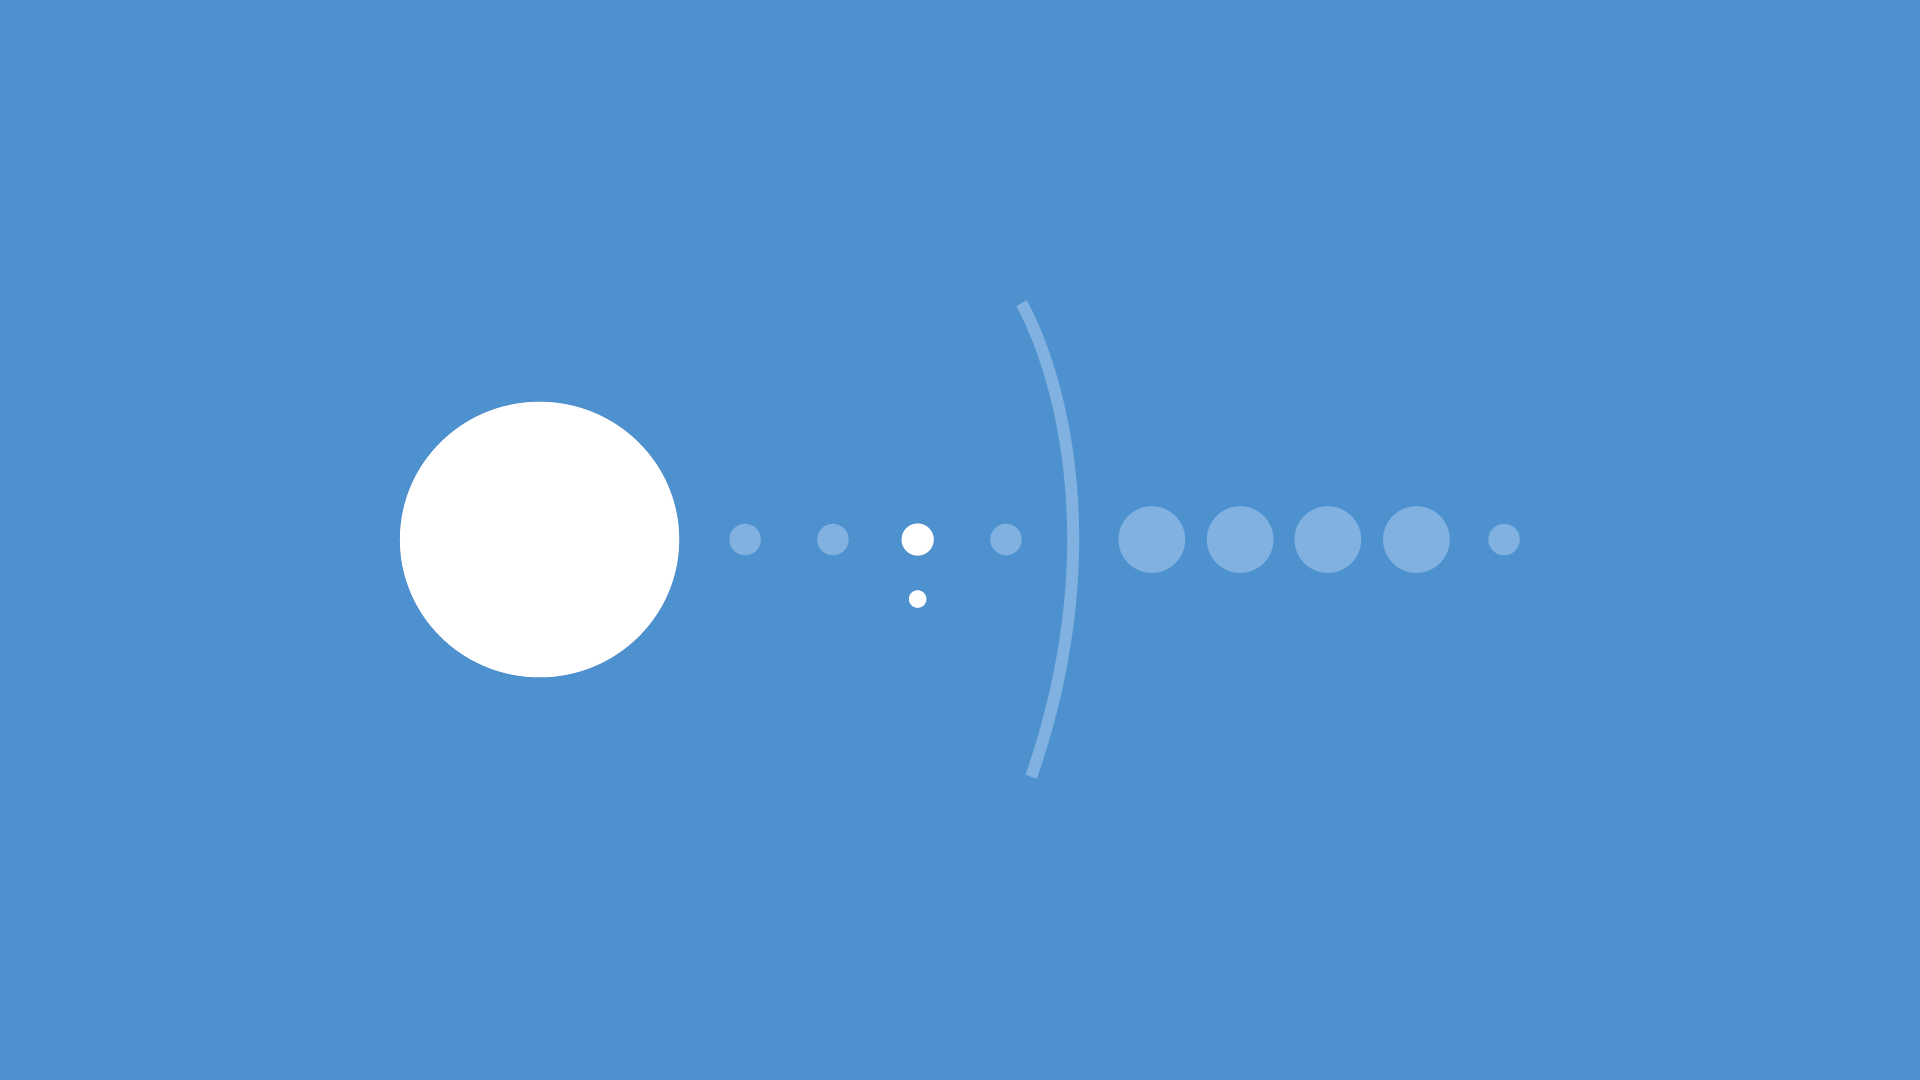 Solar System Minimalist Space Wallpaper Trendsmeup